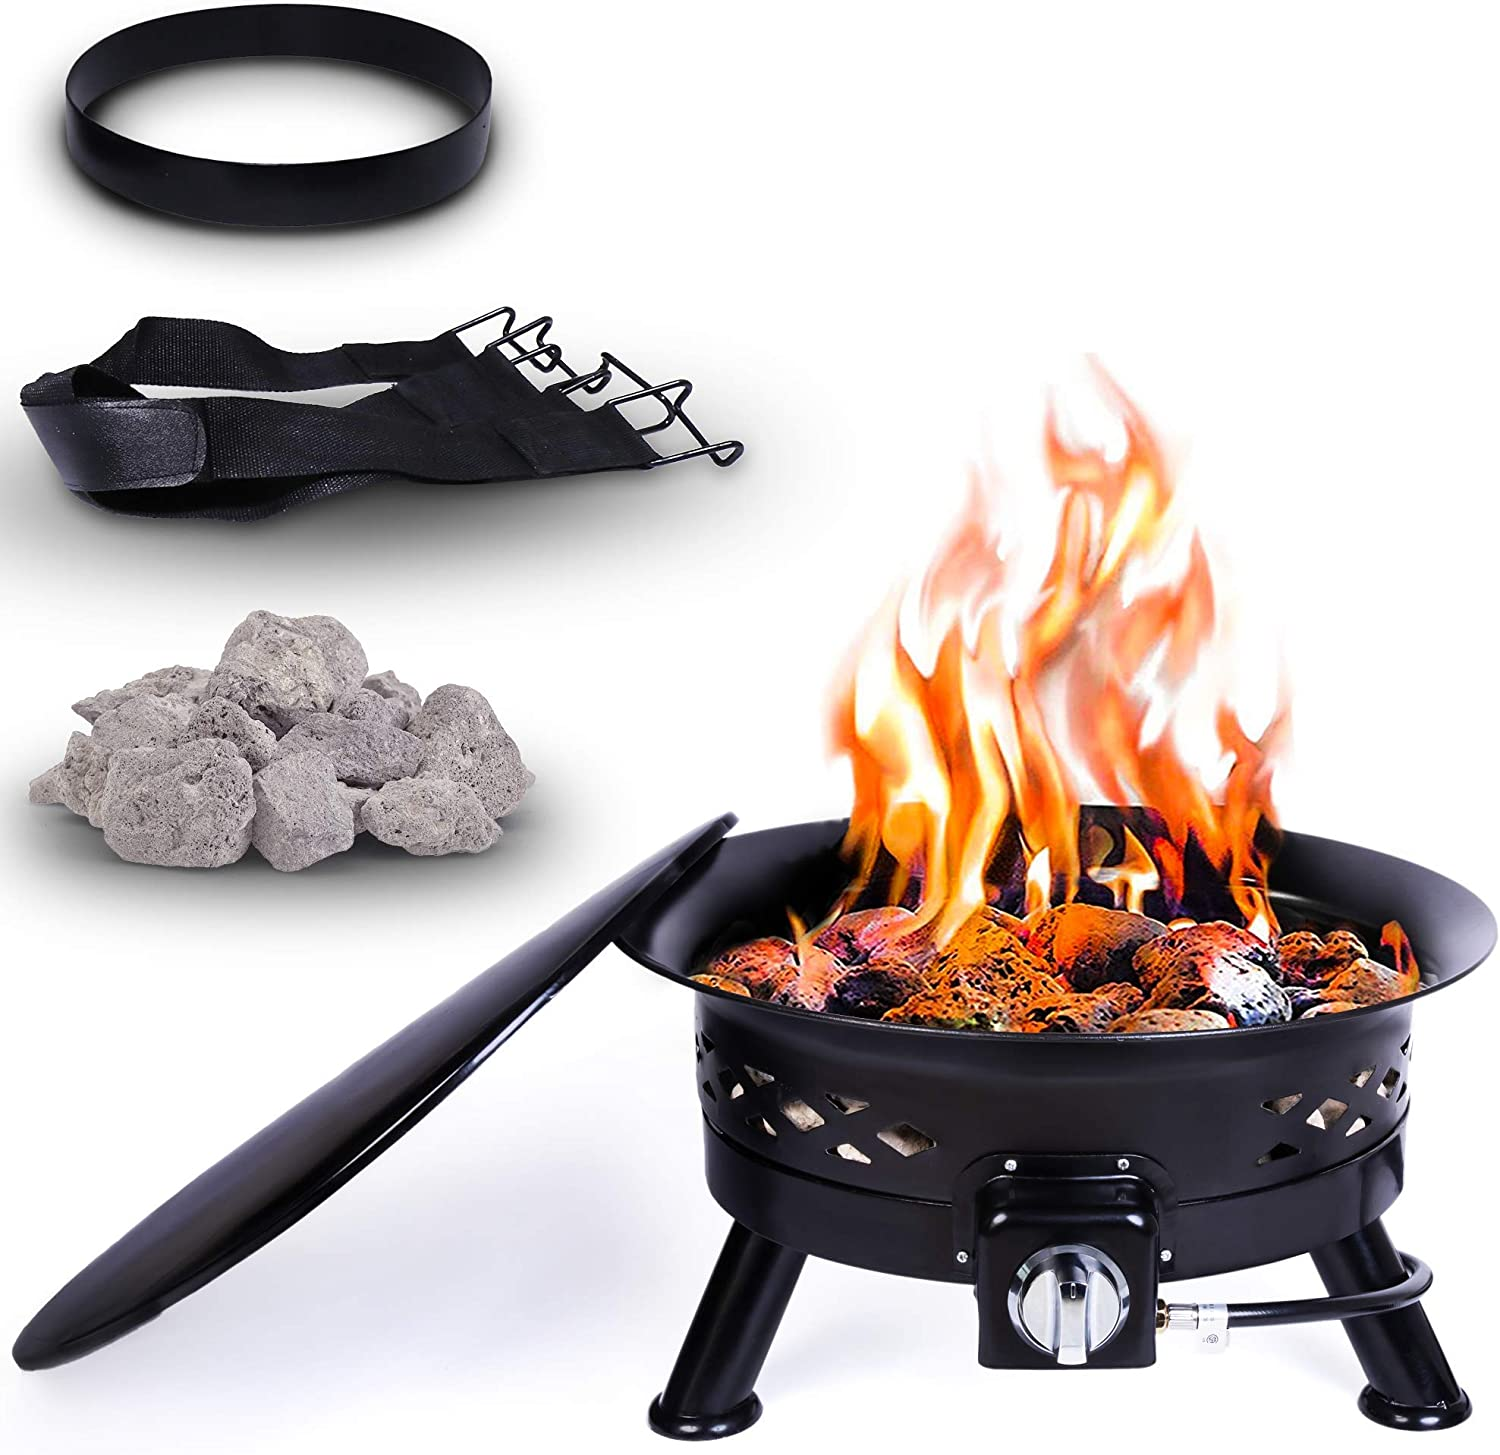 Amazon Com Project One Portable Outdoor Propane Fire Pit With Cover Carry Kit Lava Rocks 24 Inch Diameter 58 000 Btu Cross Pattern Garden Outdoor